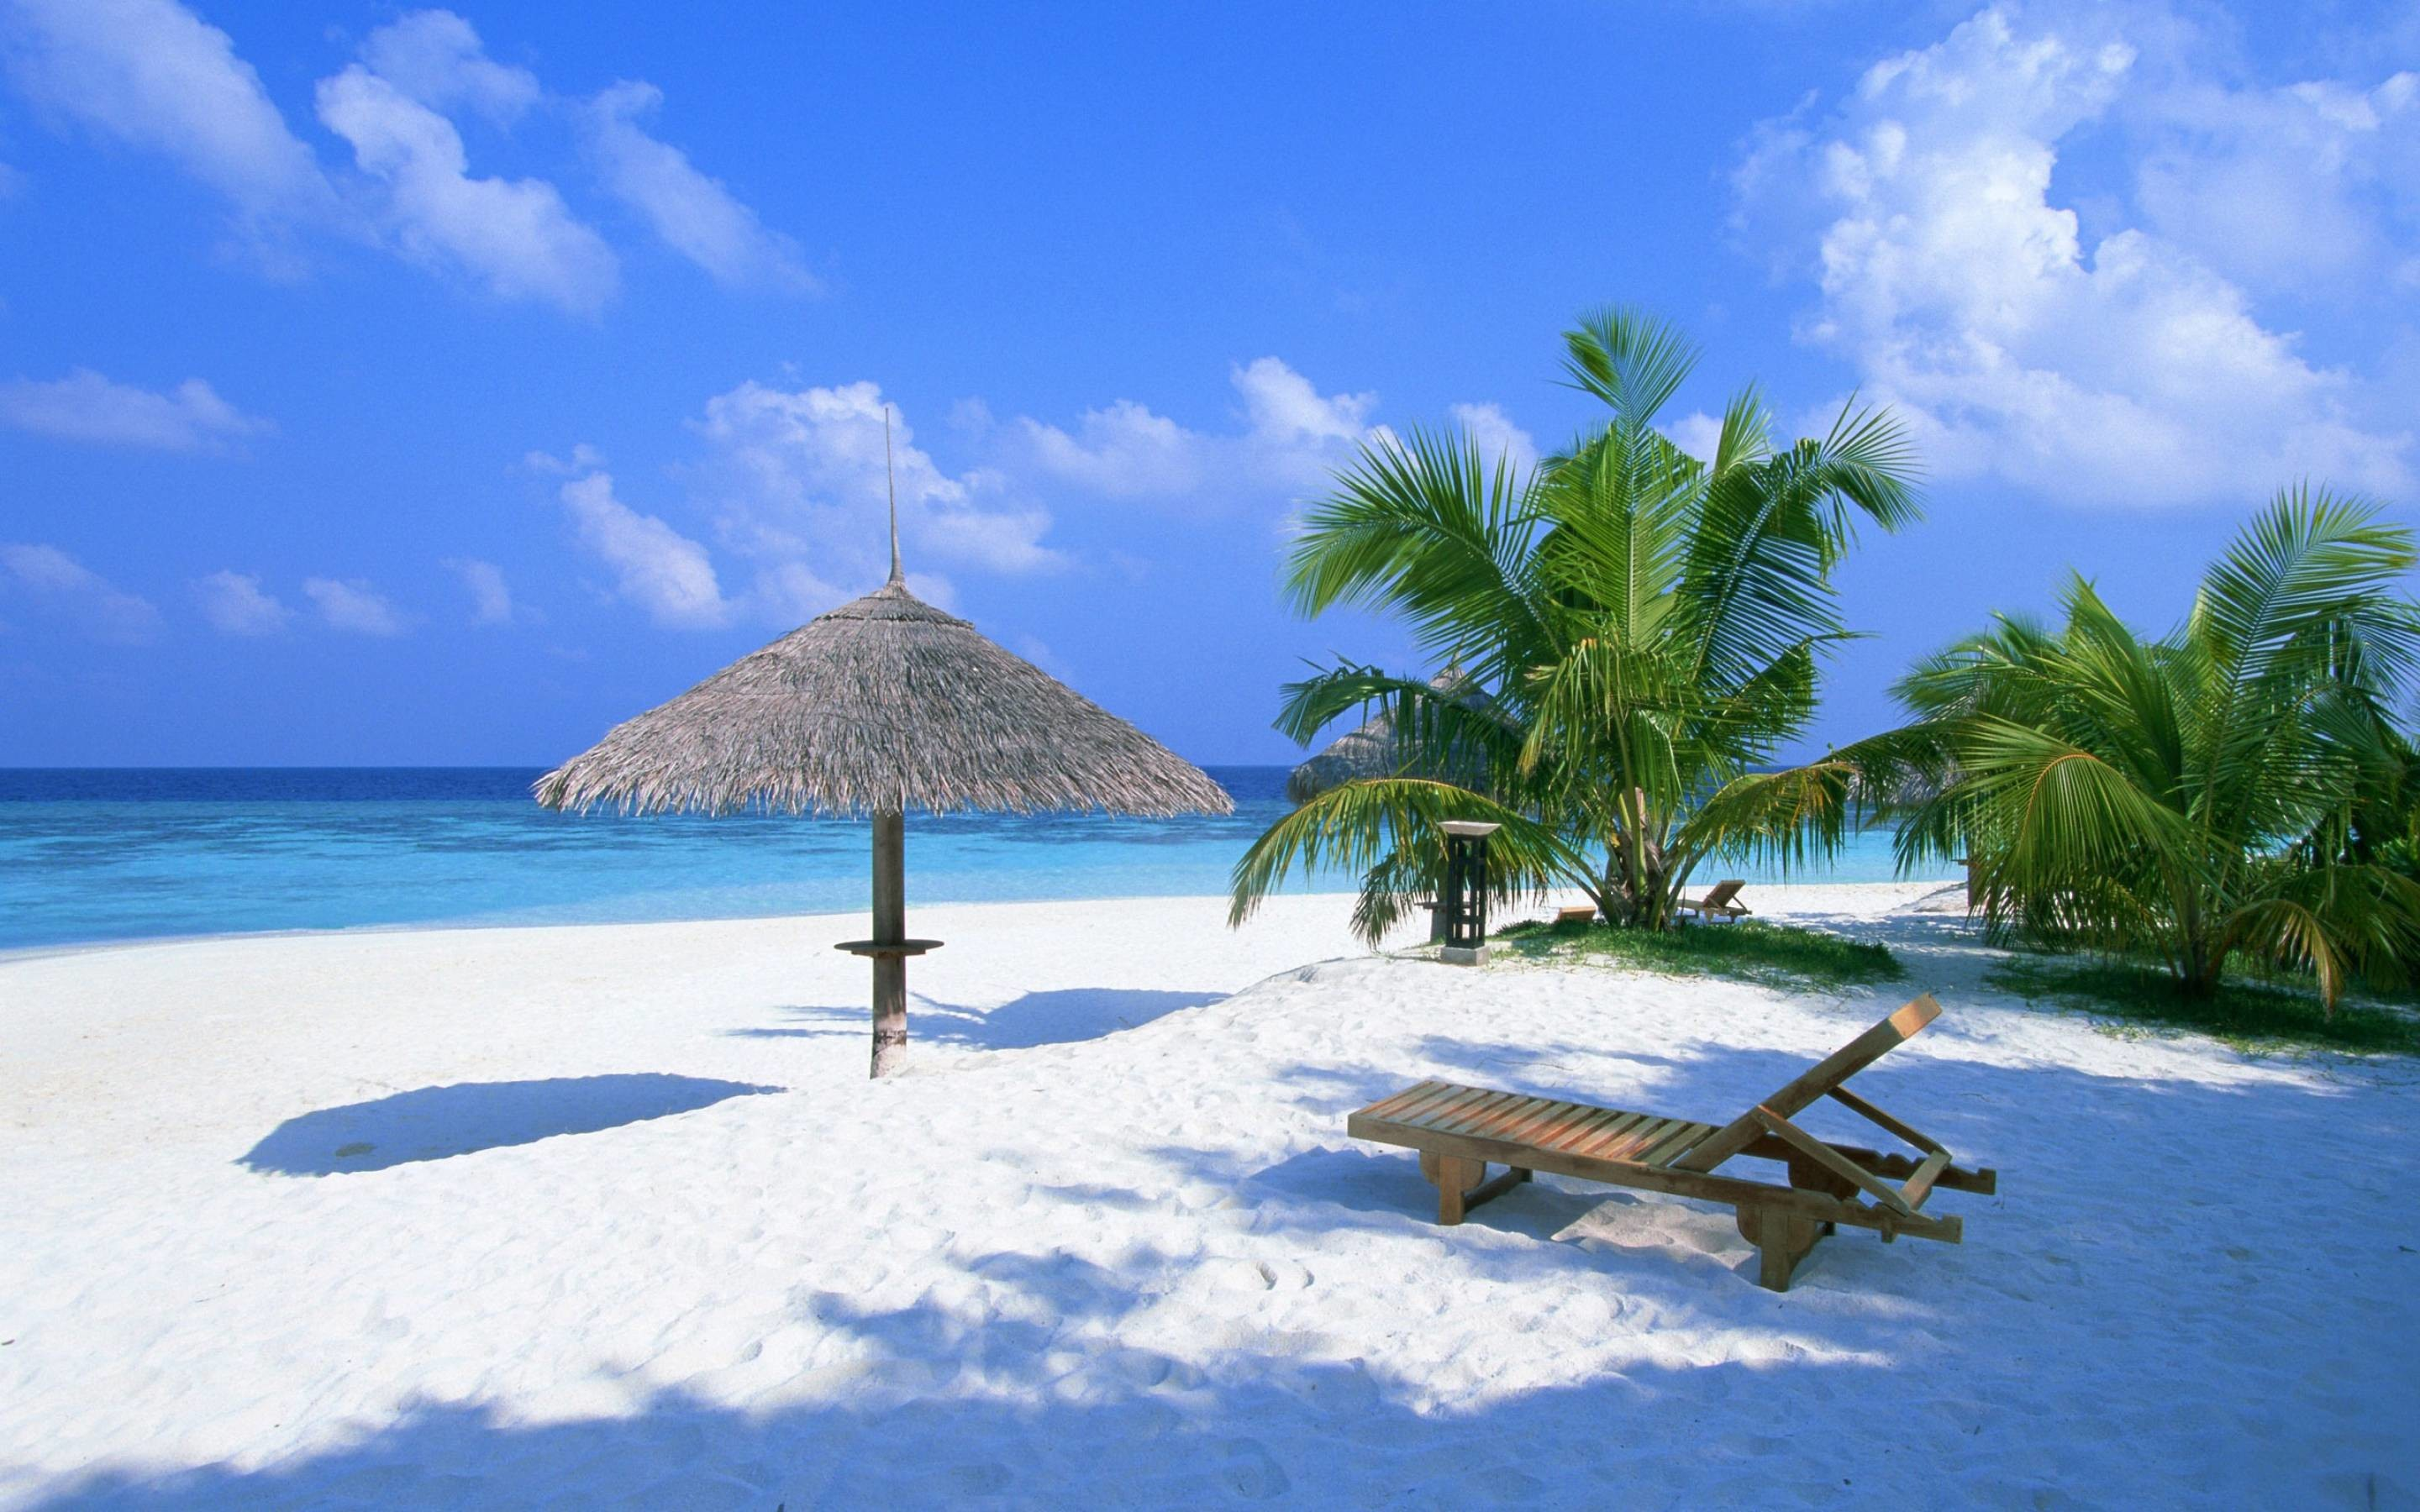 Summer Beach Hd Wallpapers Background 1 HD Wallpapers | Hdimges.